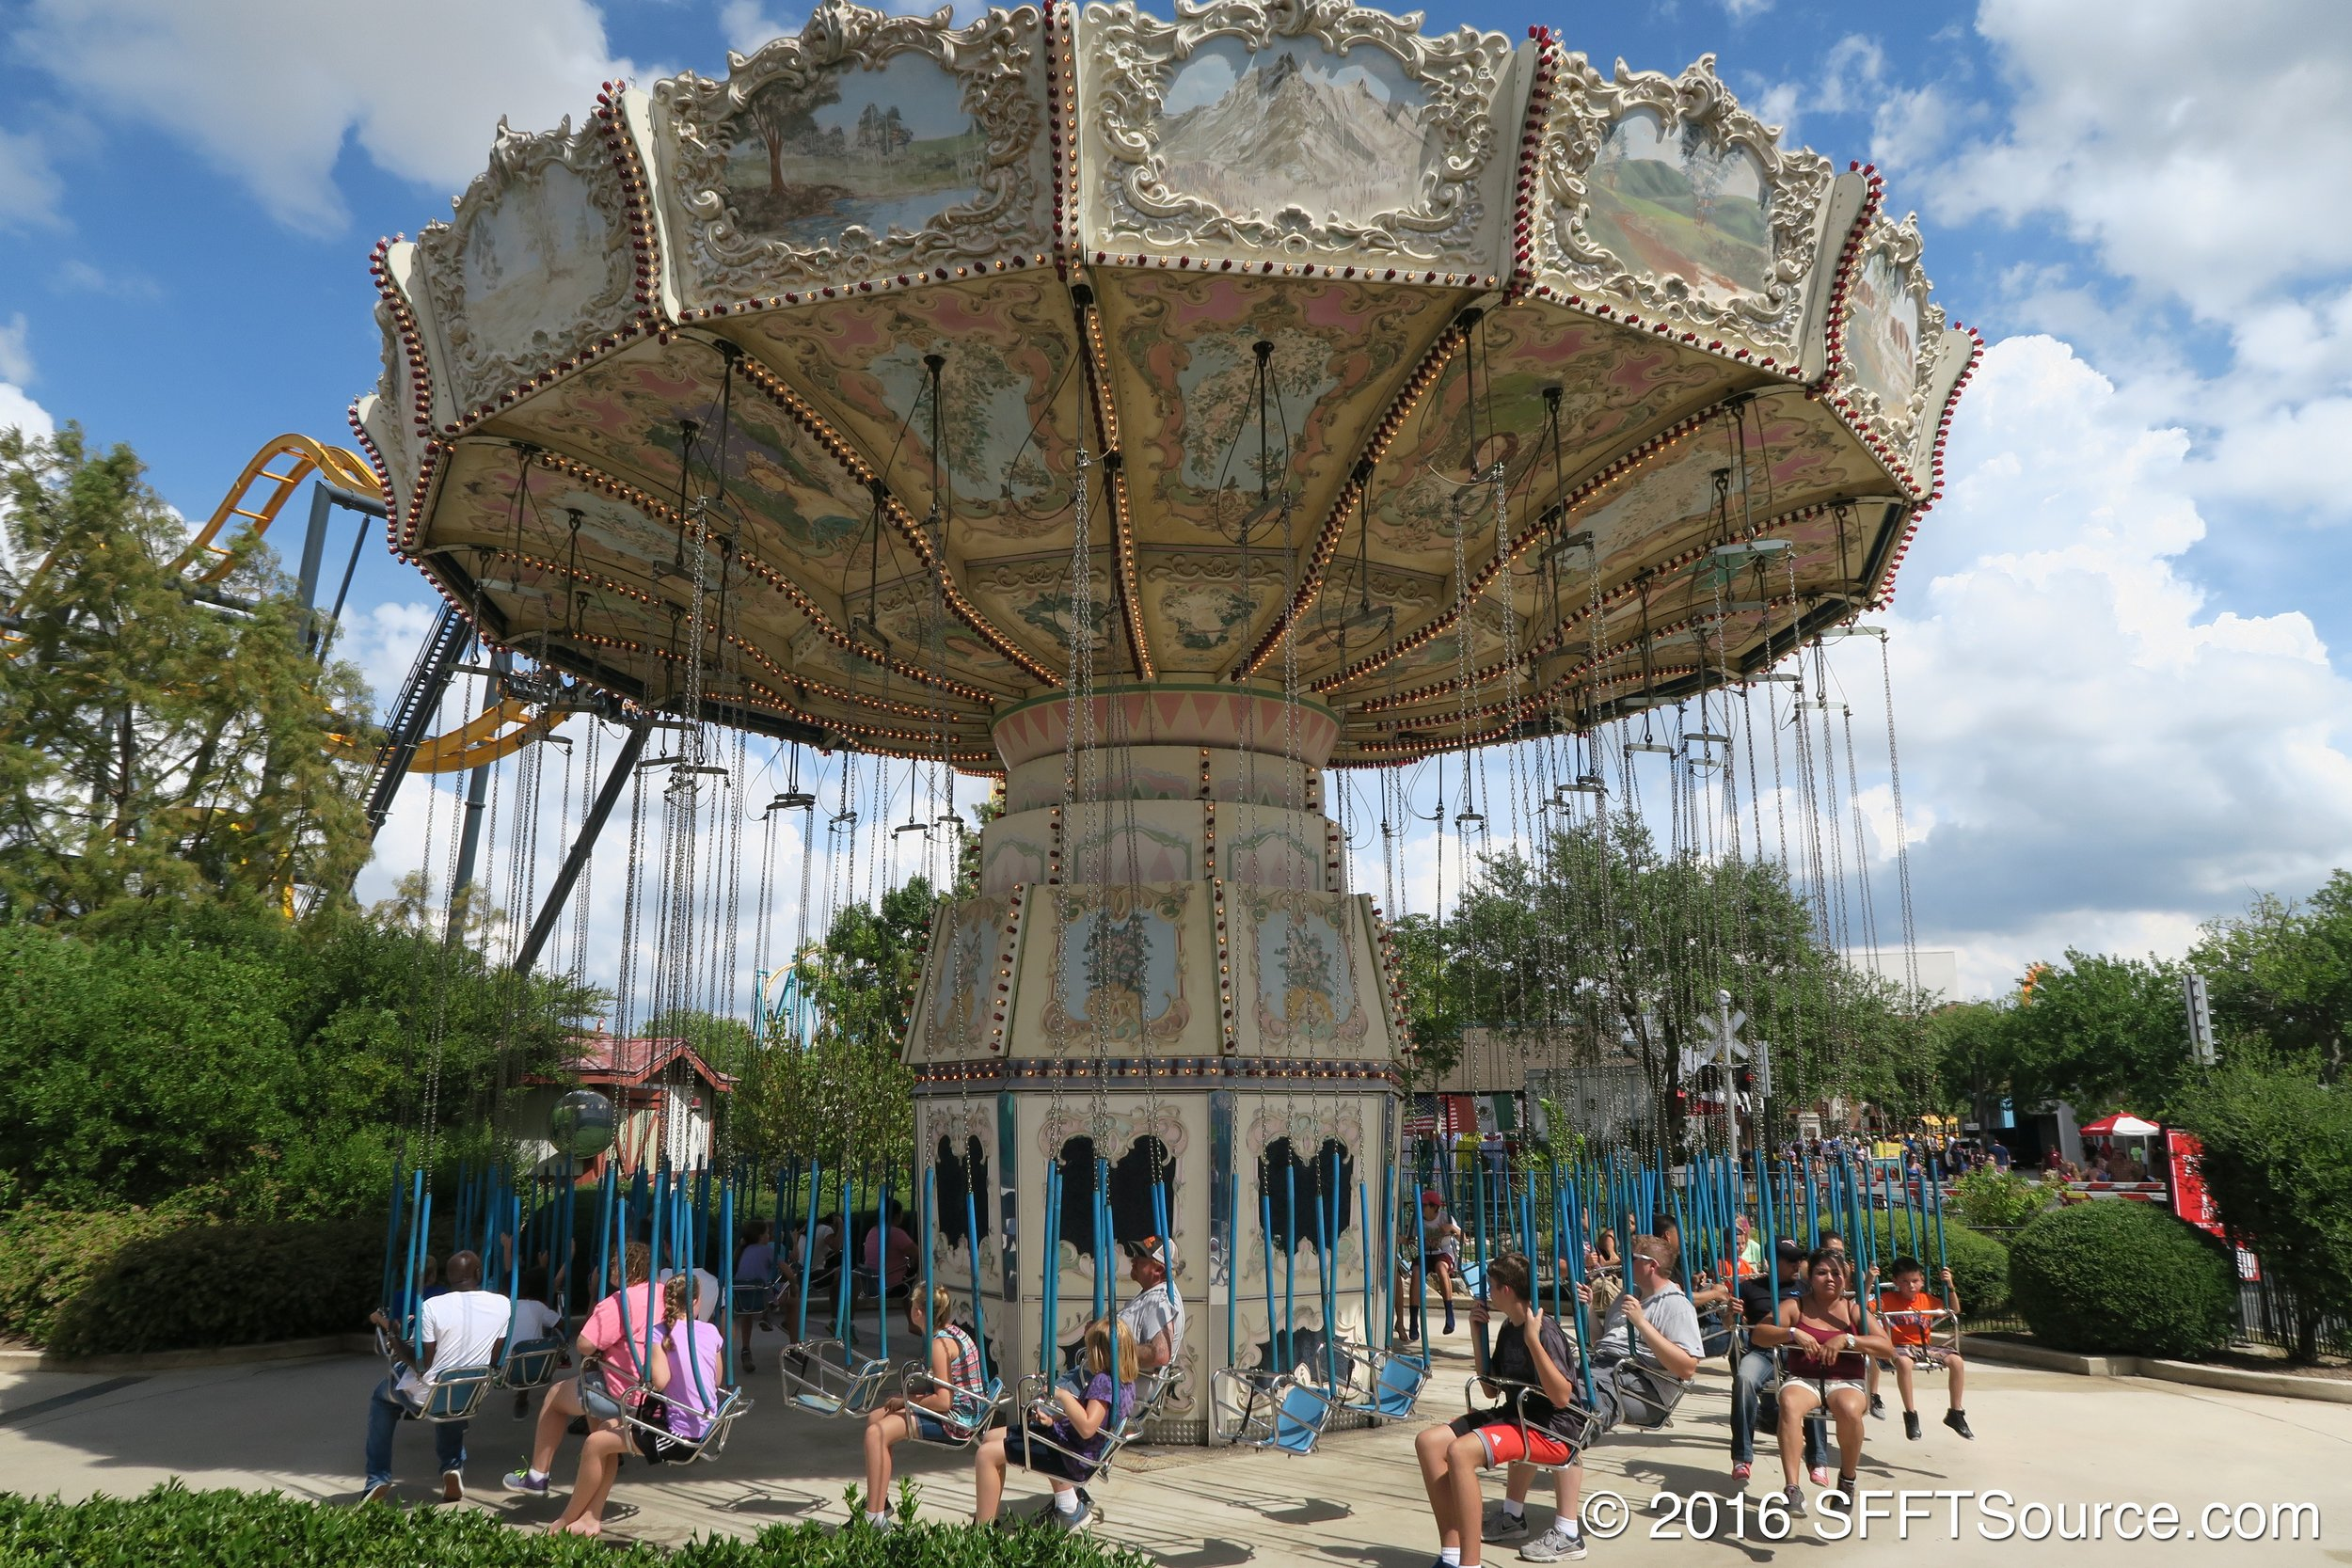 Whirligig is an original opening year attraction at Fiesta Texas.